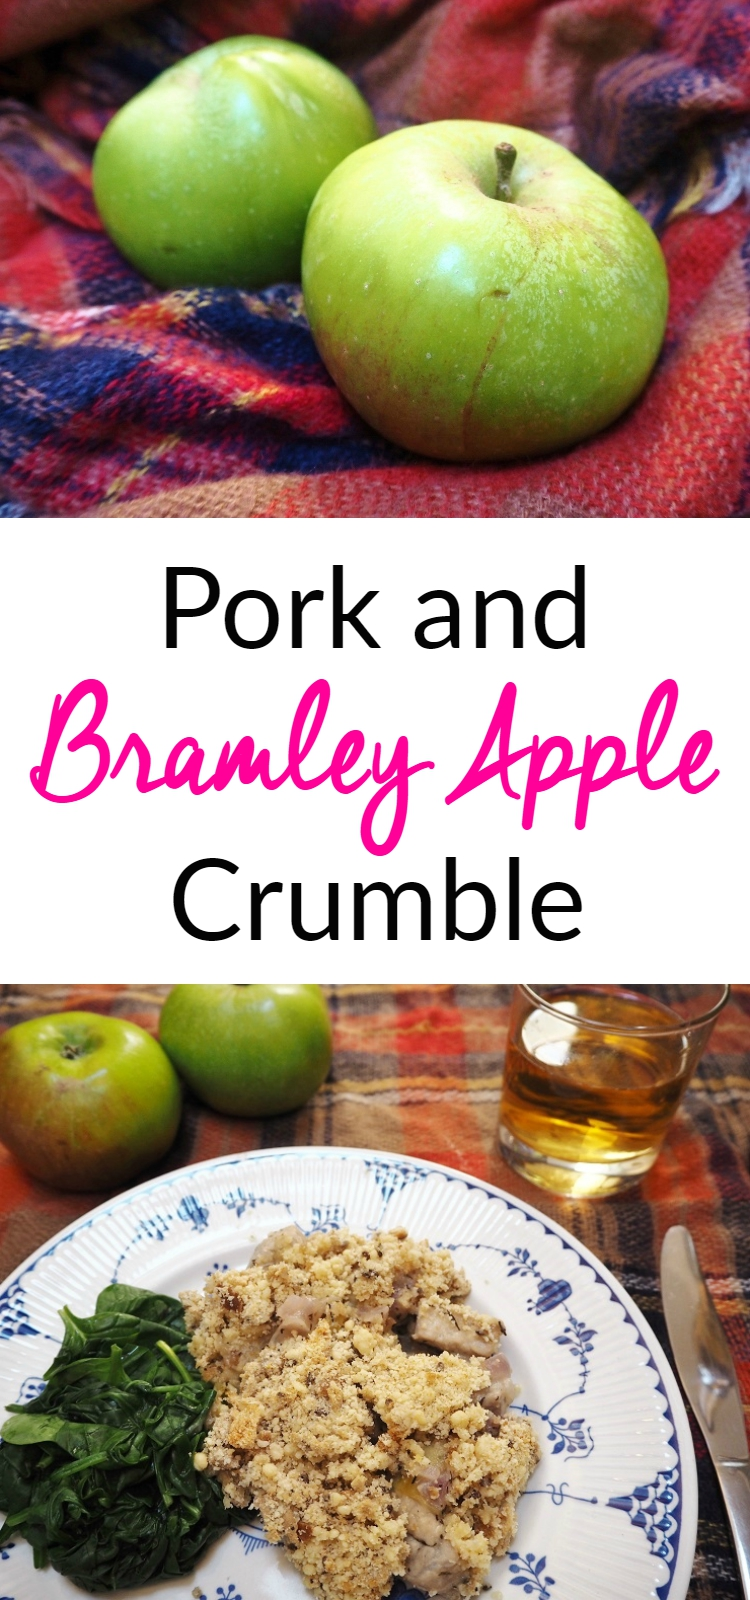 pork and bramley apple crumble